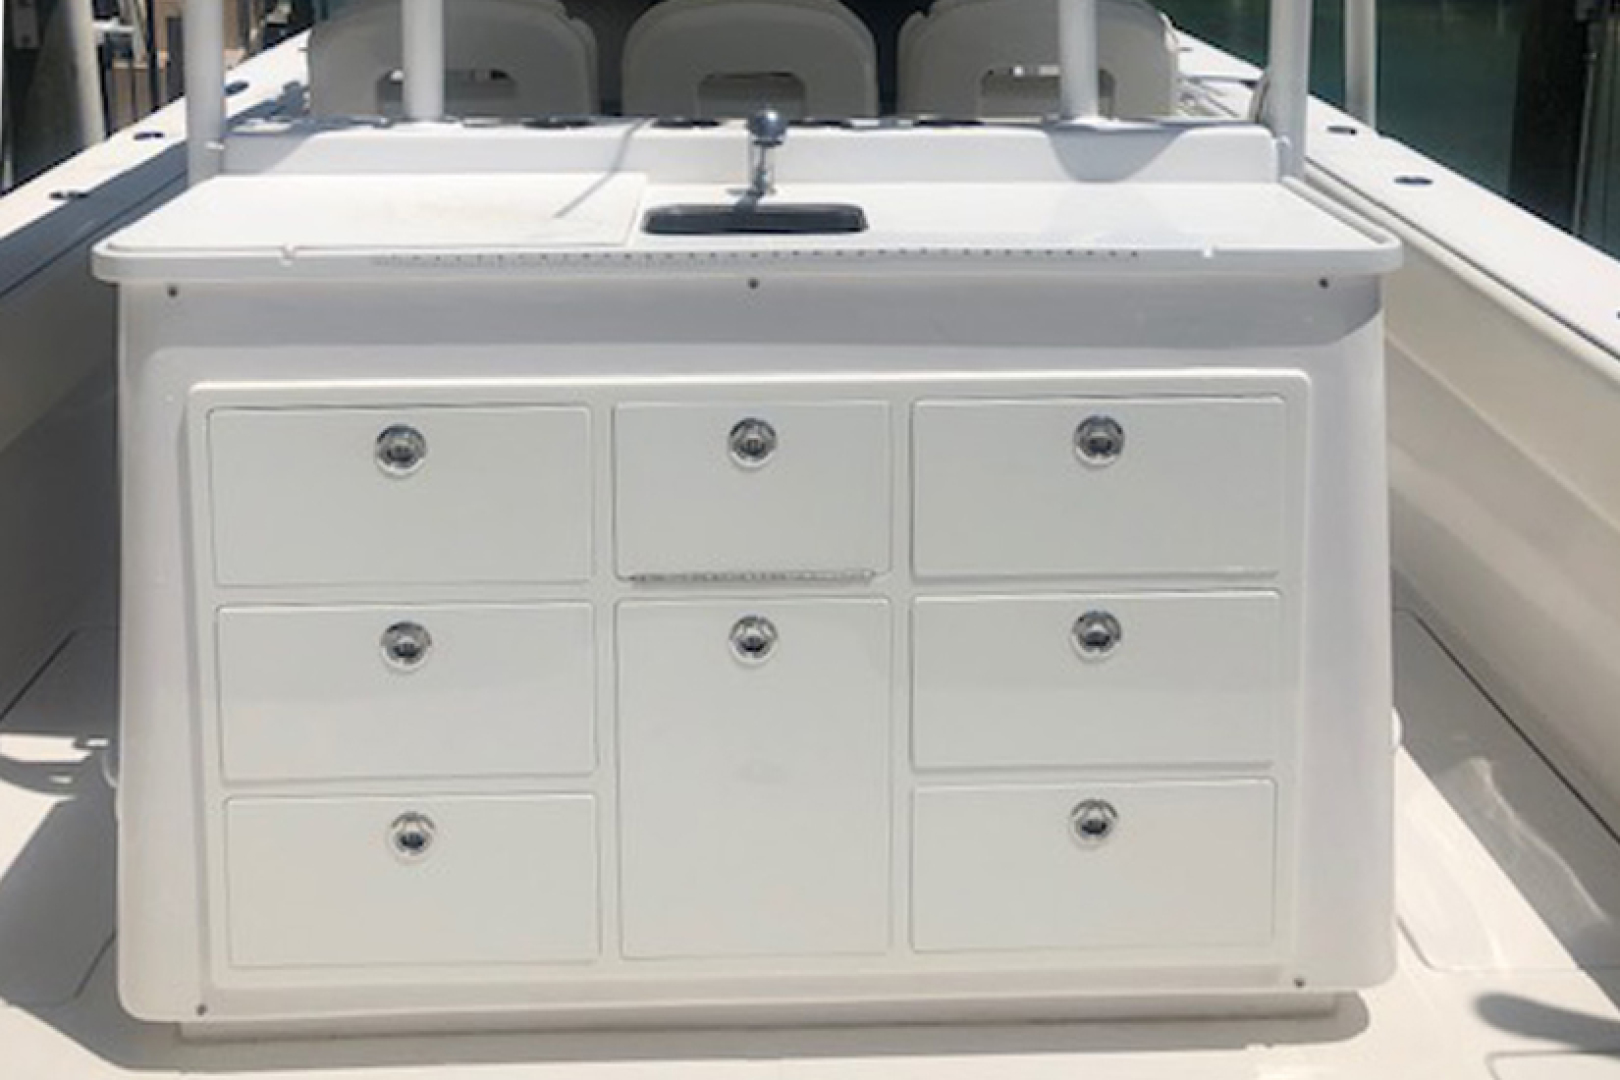 SeaHunter-45 Center Console 2016-No Name Bal Harbour-Florida-United States-2016 45 Sea Hunter  Bait Sink and Tackle Storage-1469670   Thumbnail